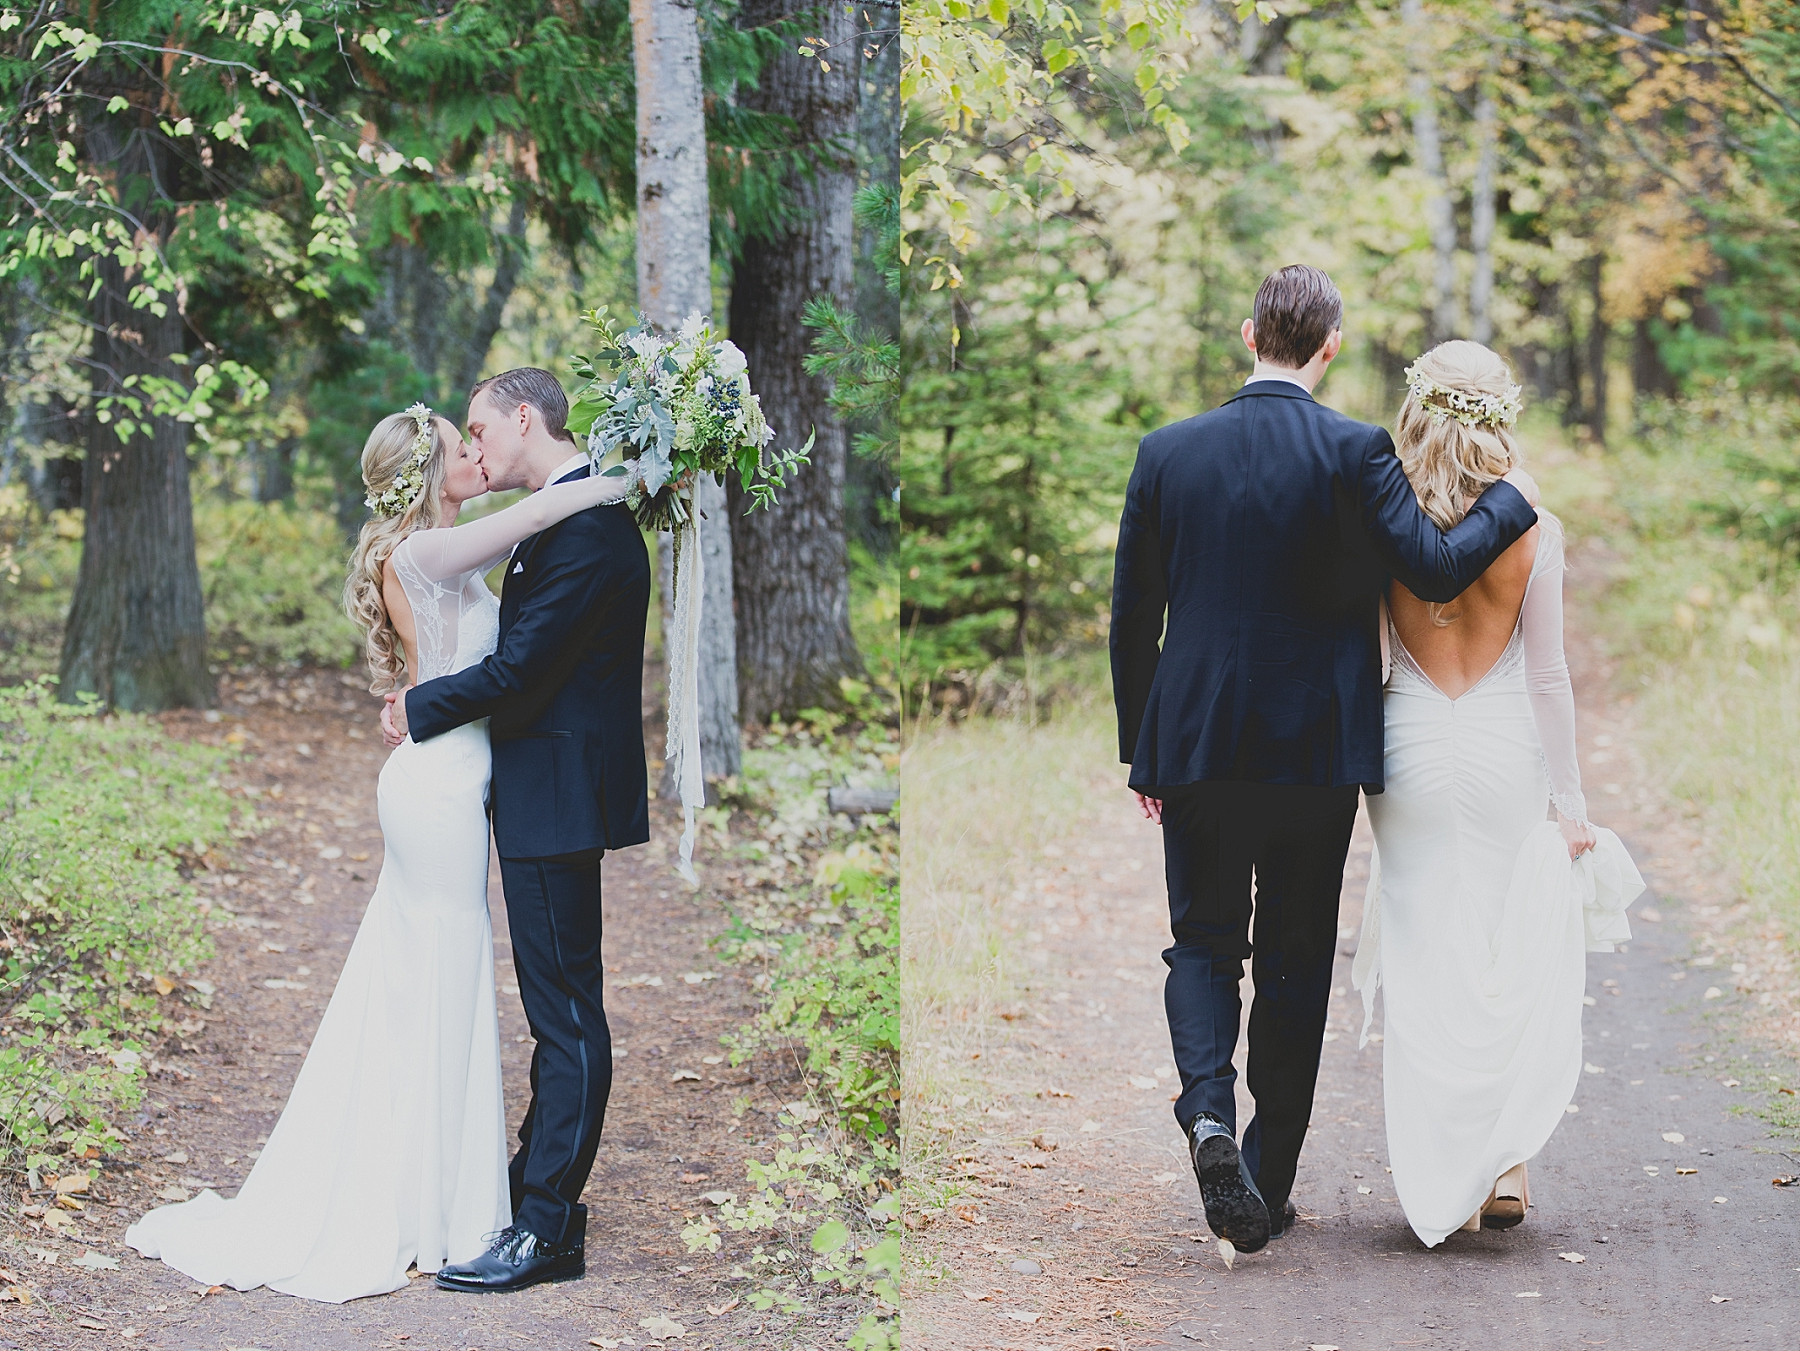 Jennifer_Mooney_Photo_glacier_park_wedding_Beargrass_florals_fall_wedding_elegant_montana_destination_velvet_bride_katie_may_dress_verona_gown_00035.jpg